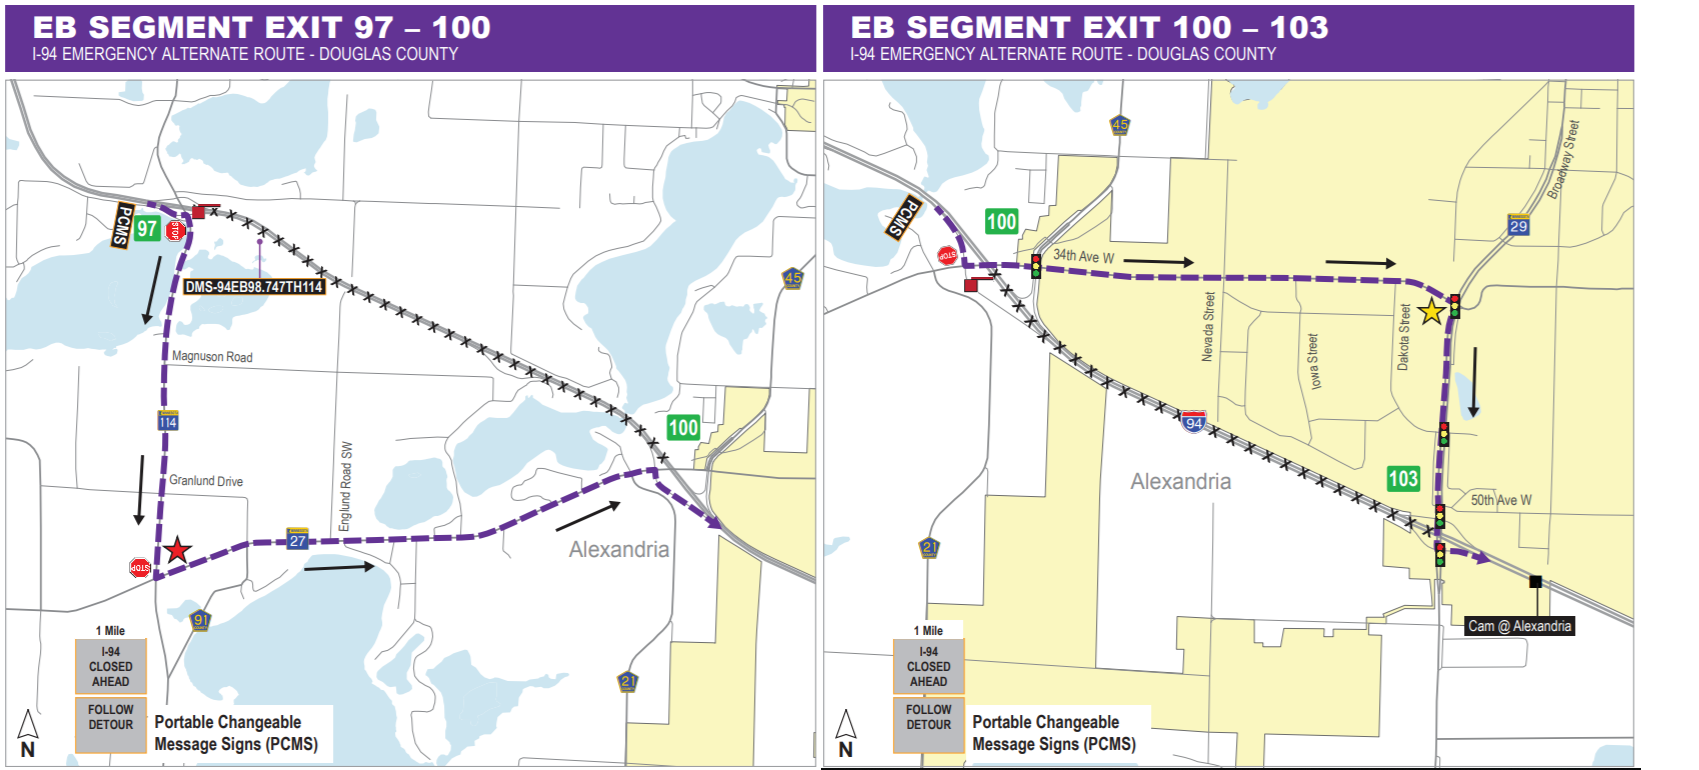 Map of eastbound alternative route for the I-94 emergency repairs